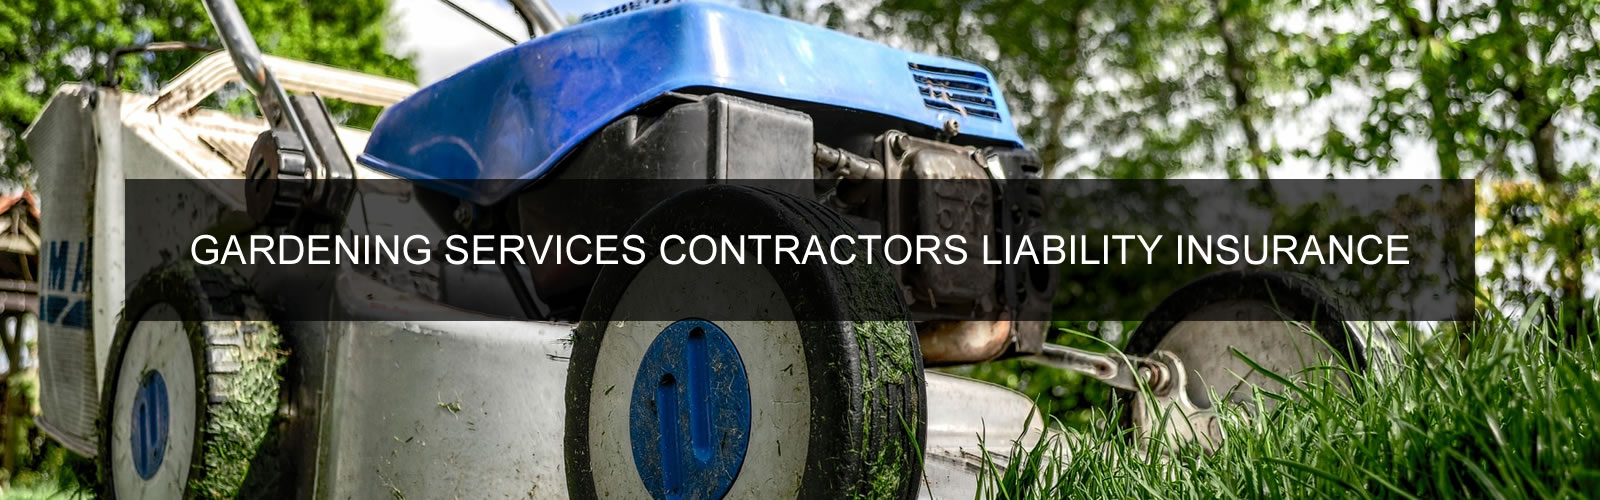 Gardening Services Contractors Liability Insurance